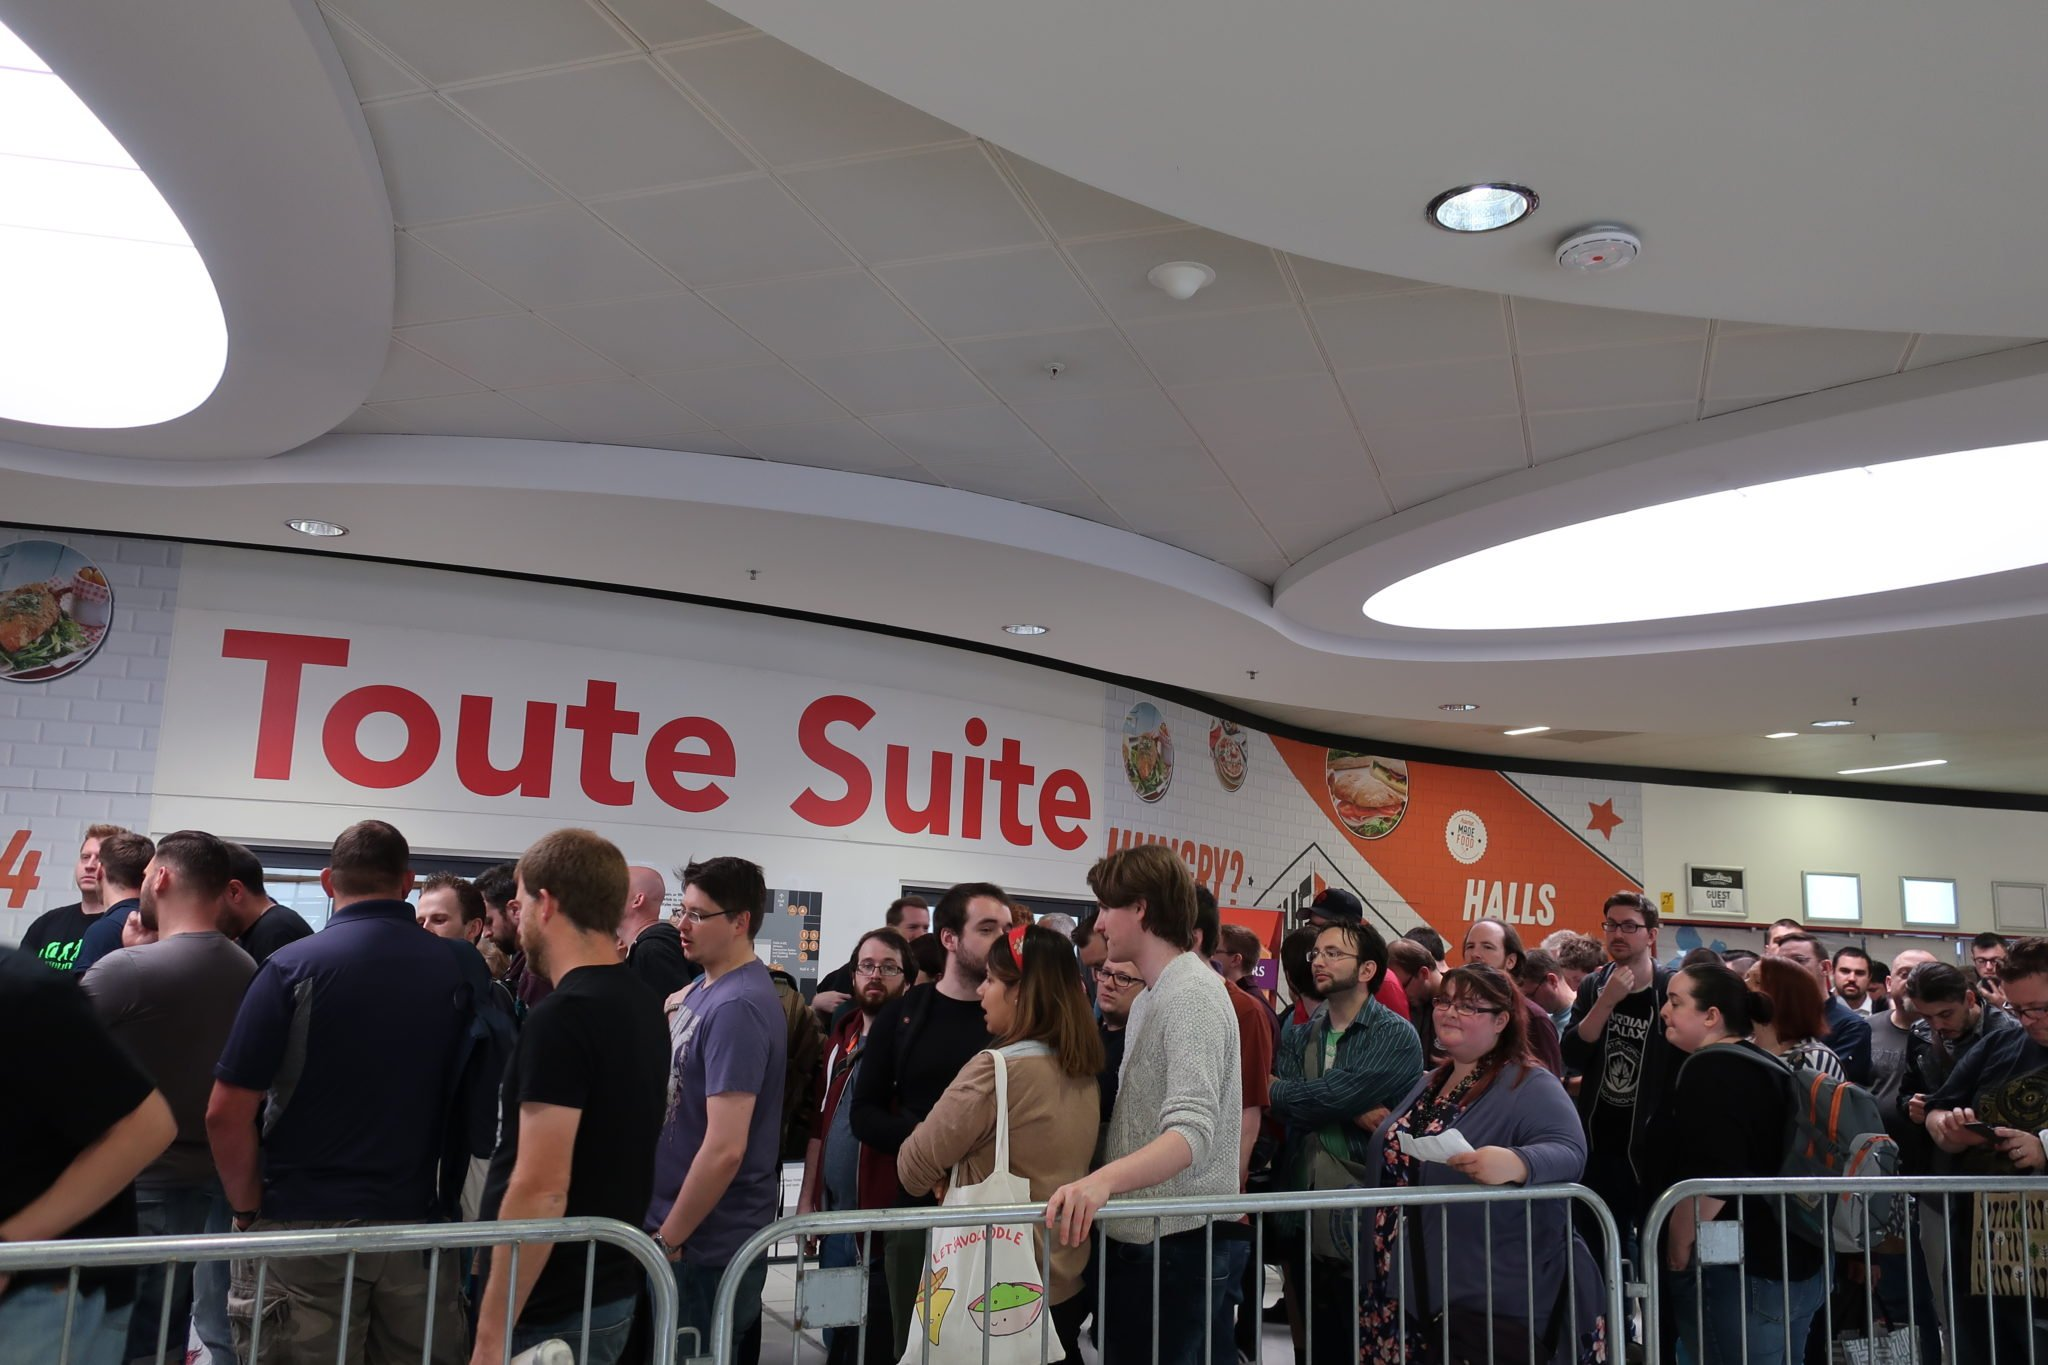 The ticket queue